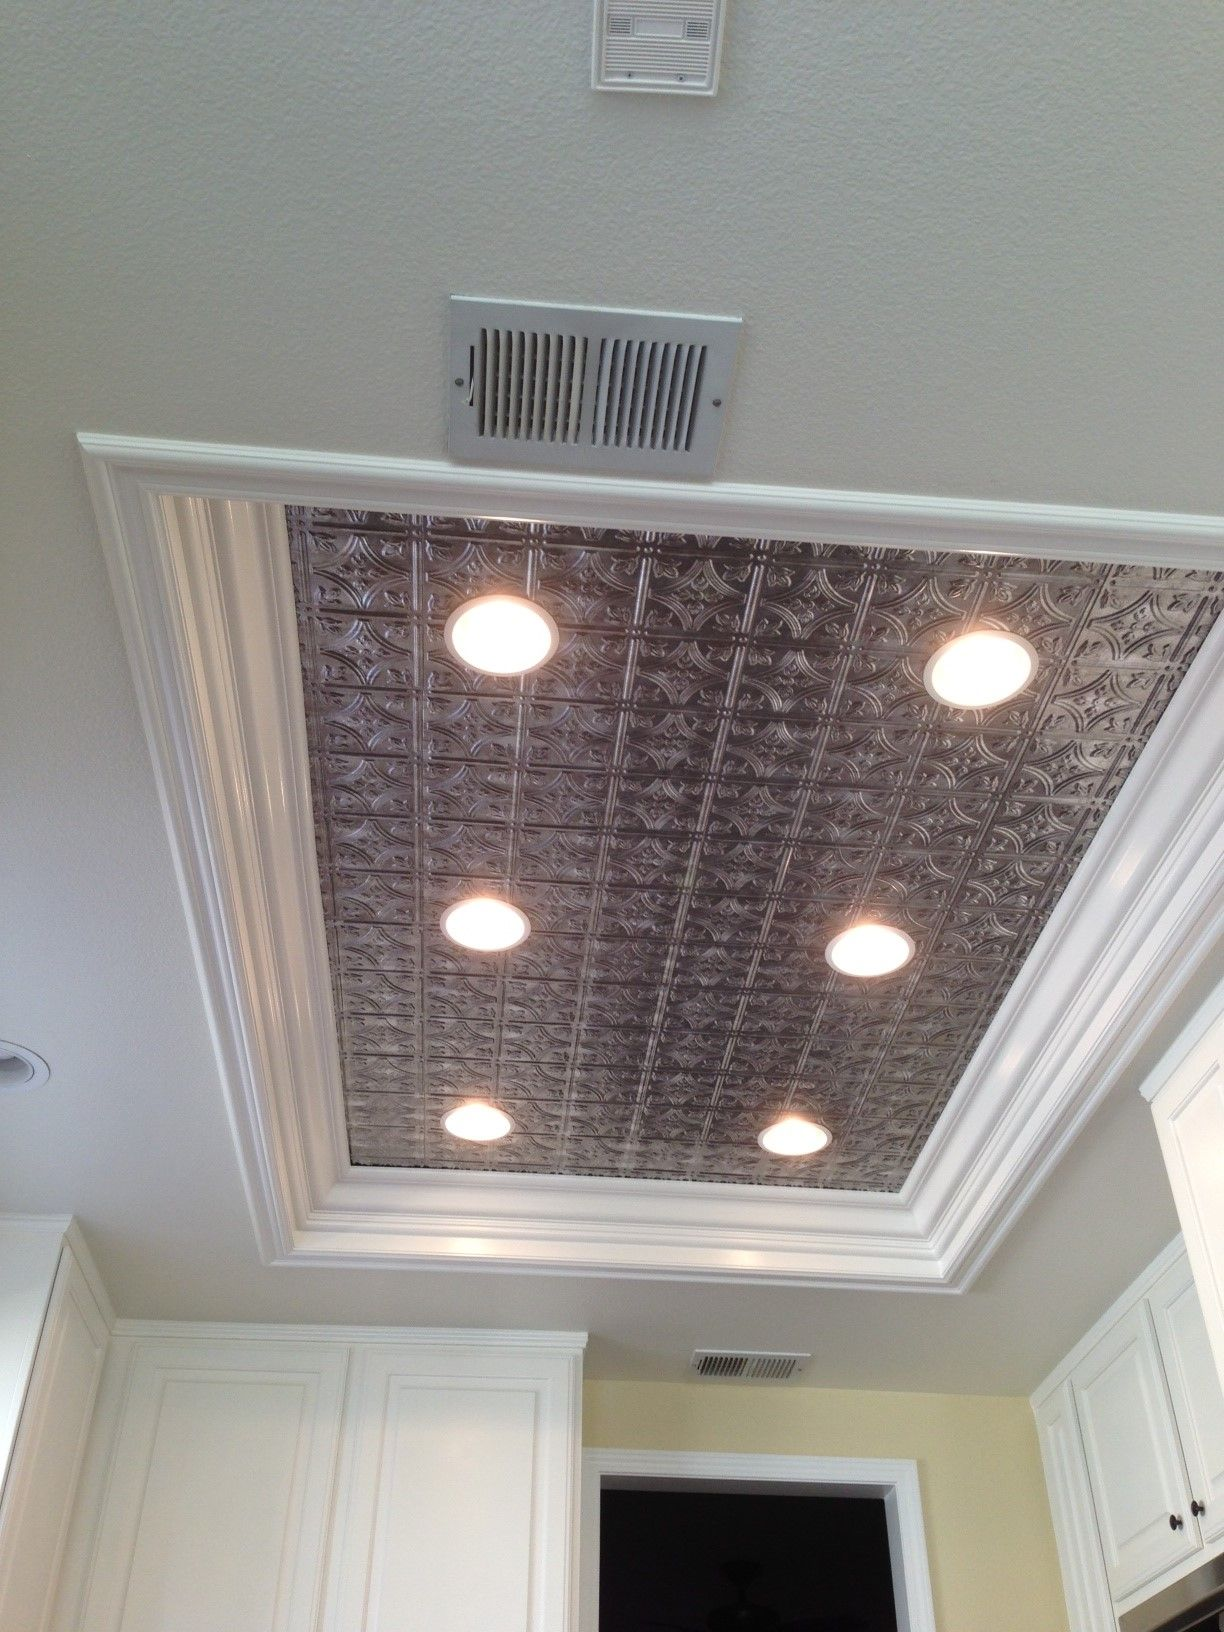 Remodel Flourescent Light Box In Kitchen | We Also Replaced The Fluorescent  Kitchen Light Box With Ceiling Tiles .